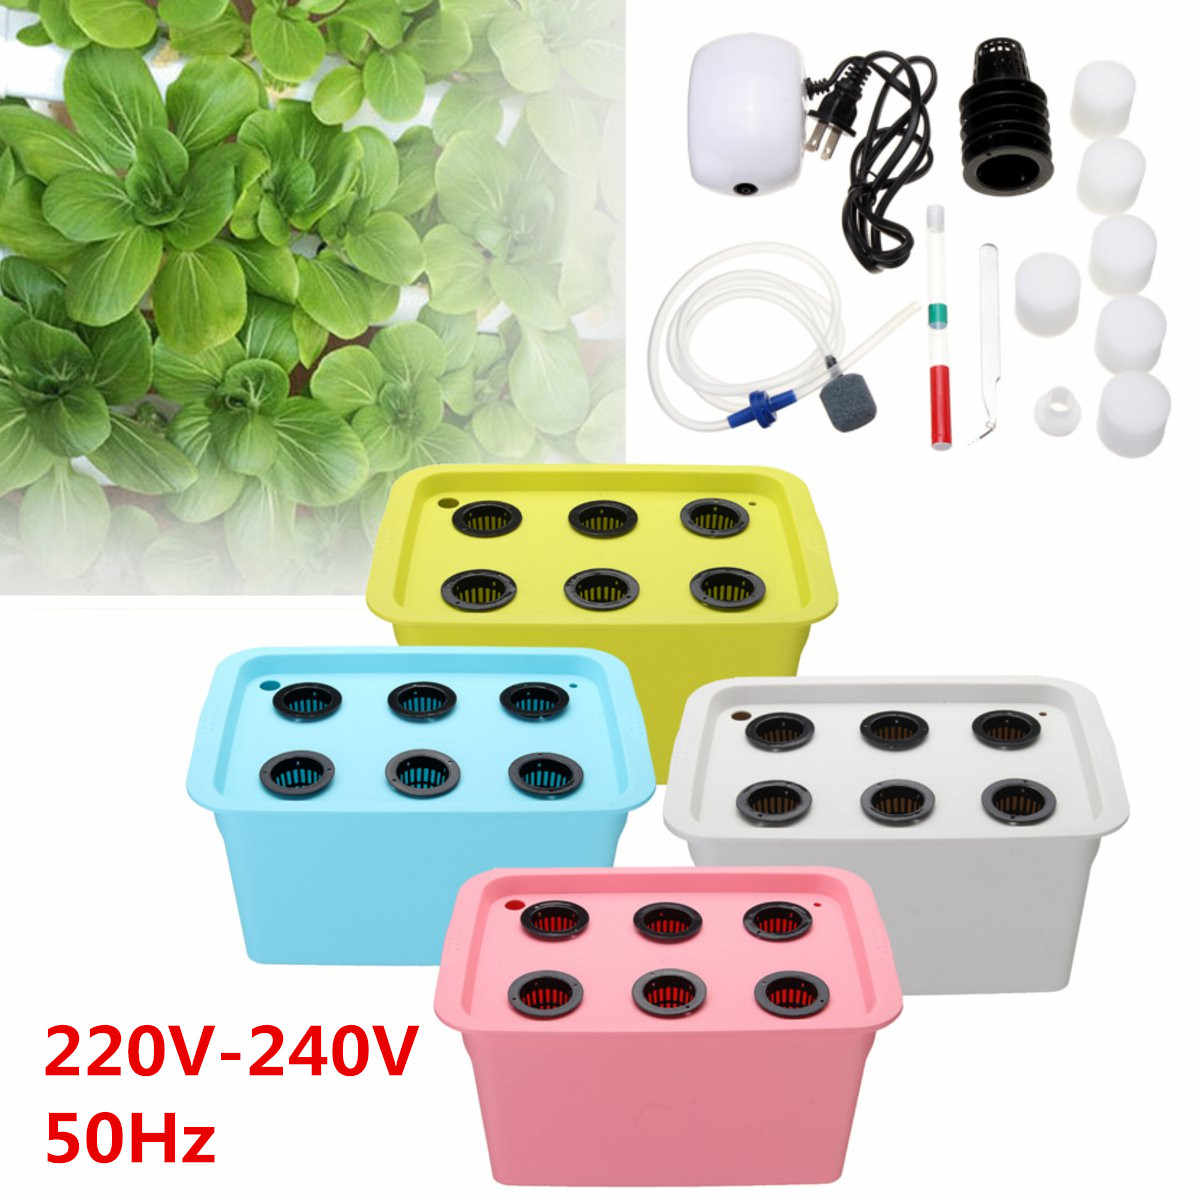 220V Hydroponic System Kit 6 Holes DWC Aerobic Soilless Cultivation Indoor  Water Planting Grow Box